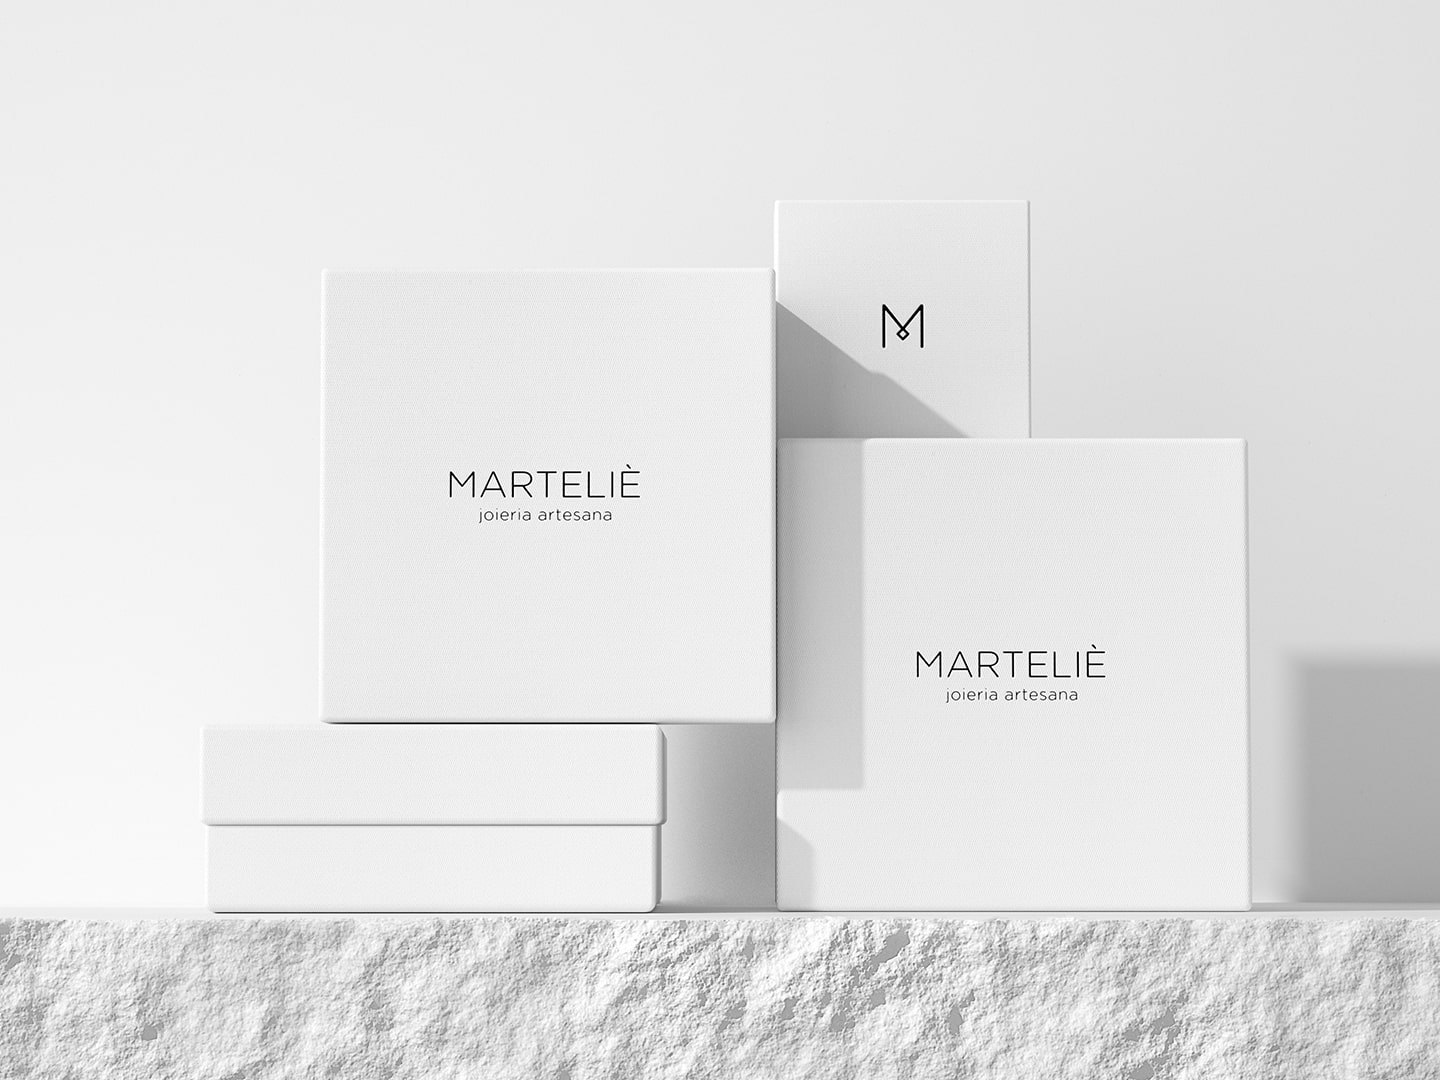 Packaging boxes for Marteliè